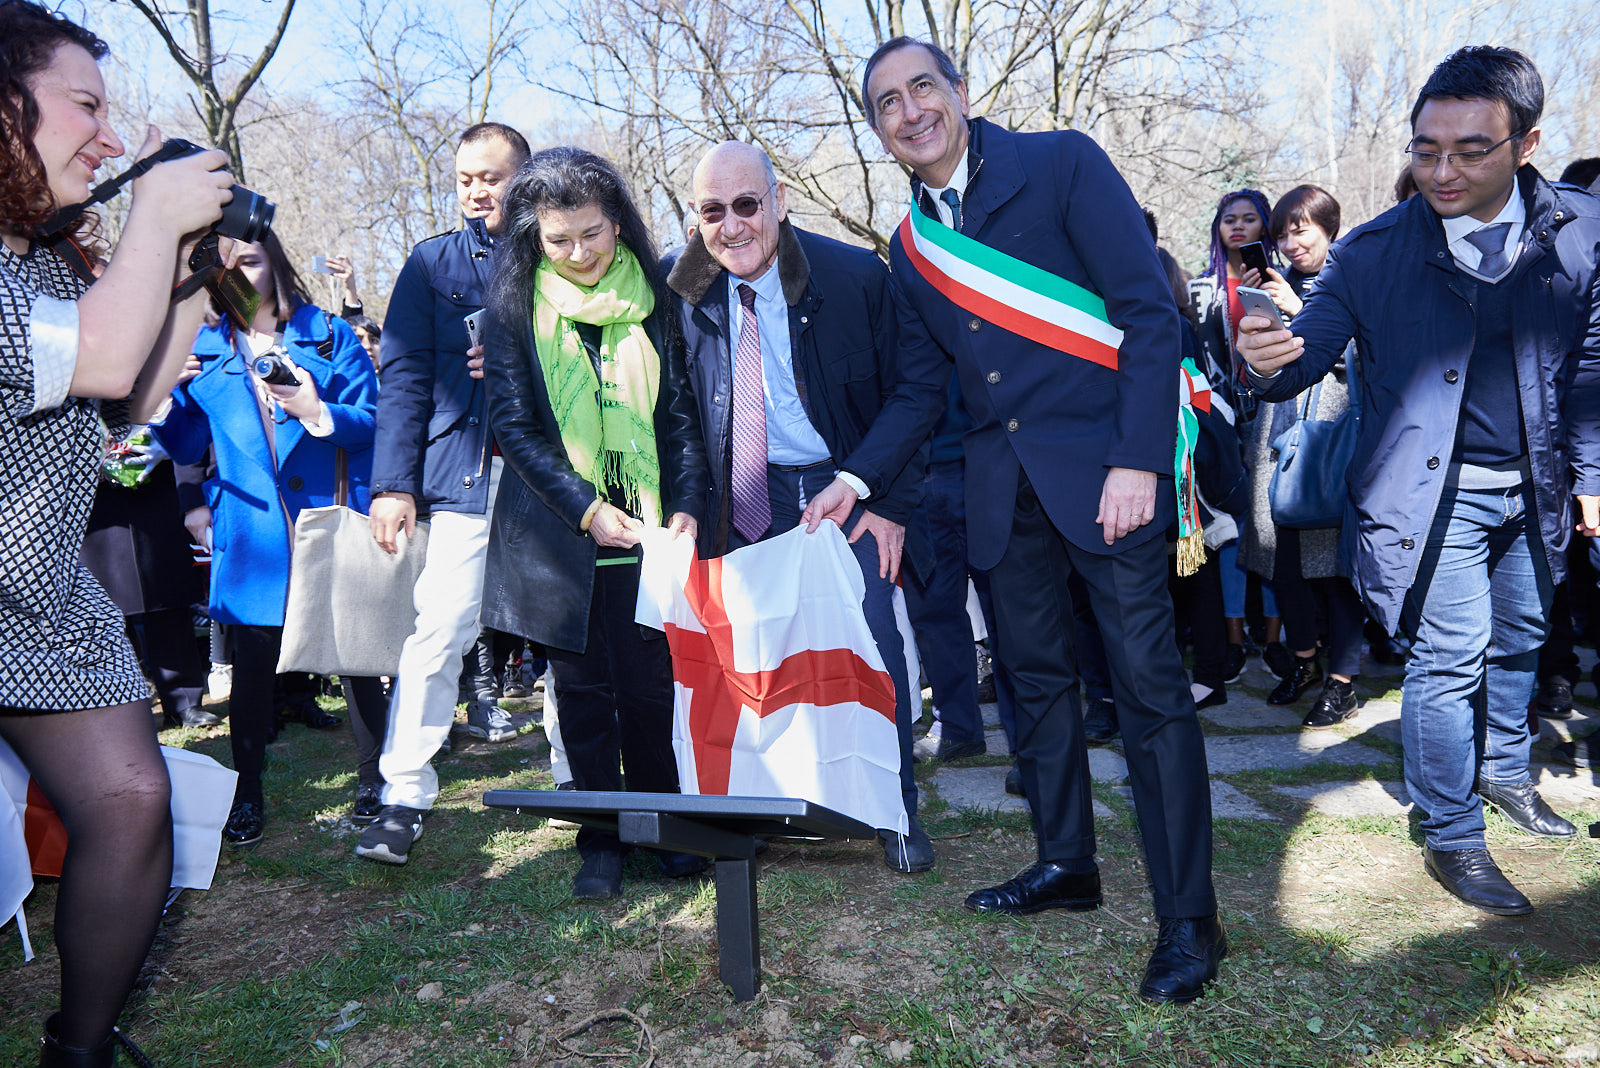 Gabriele Nissim, Chairman of Gariwo and Beppe Sala, mayor of Milan, at the Ceremony of Monte Stella hill 2018